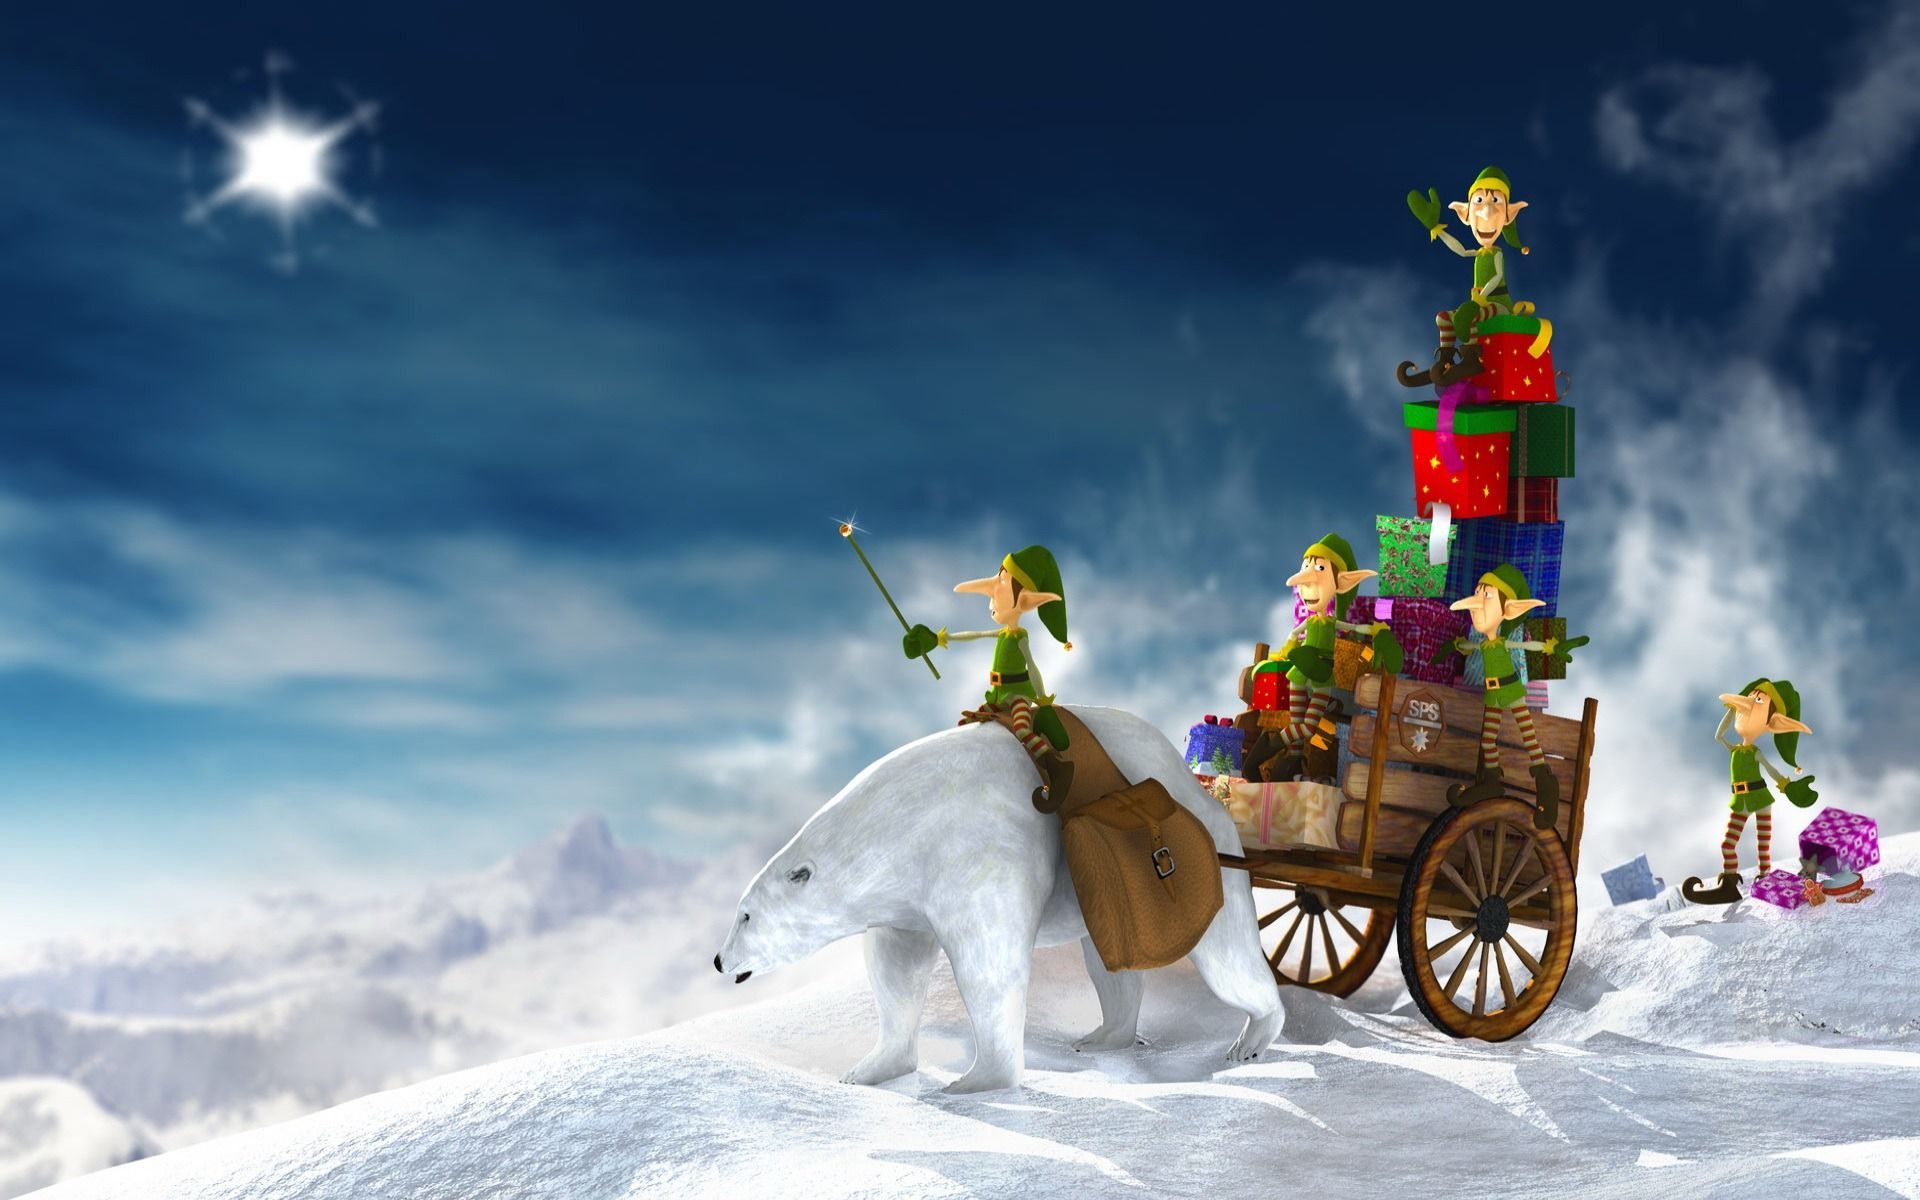 20 HD Christmas Wallpapers for Desktop Free - Download Here ...